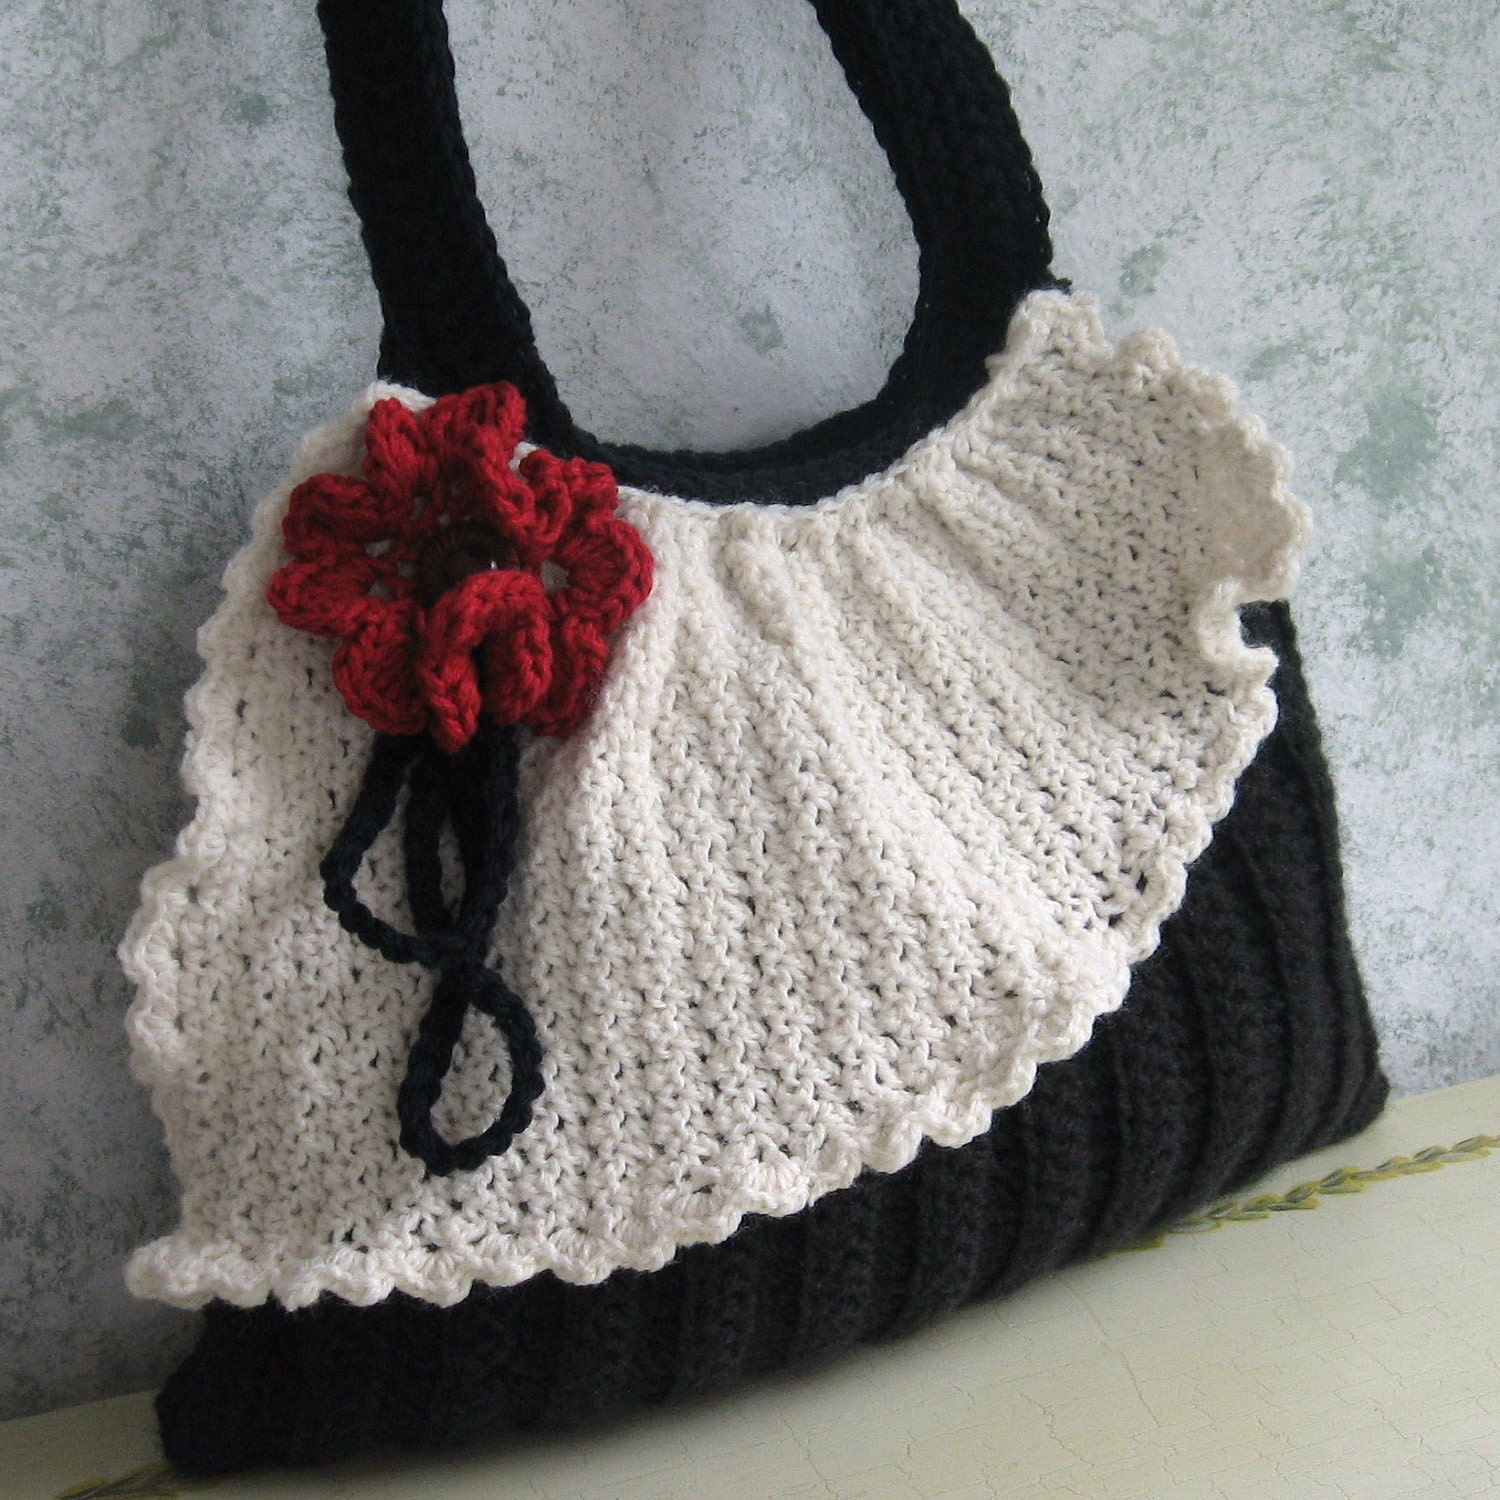 Crochet Satchel Bag Pattern : Crochet Purse Pattern Pleated Bag With Drape And by kalliedesigns